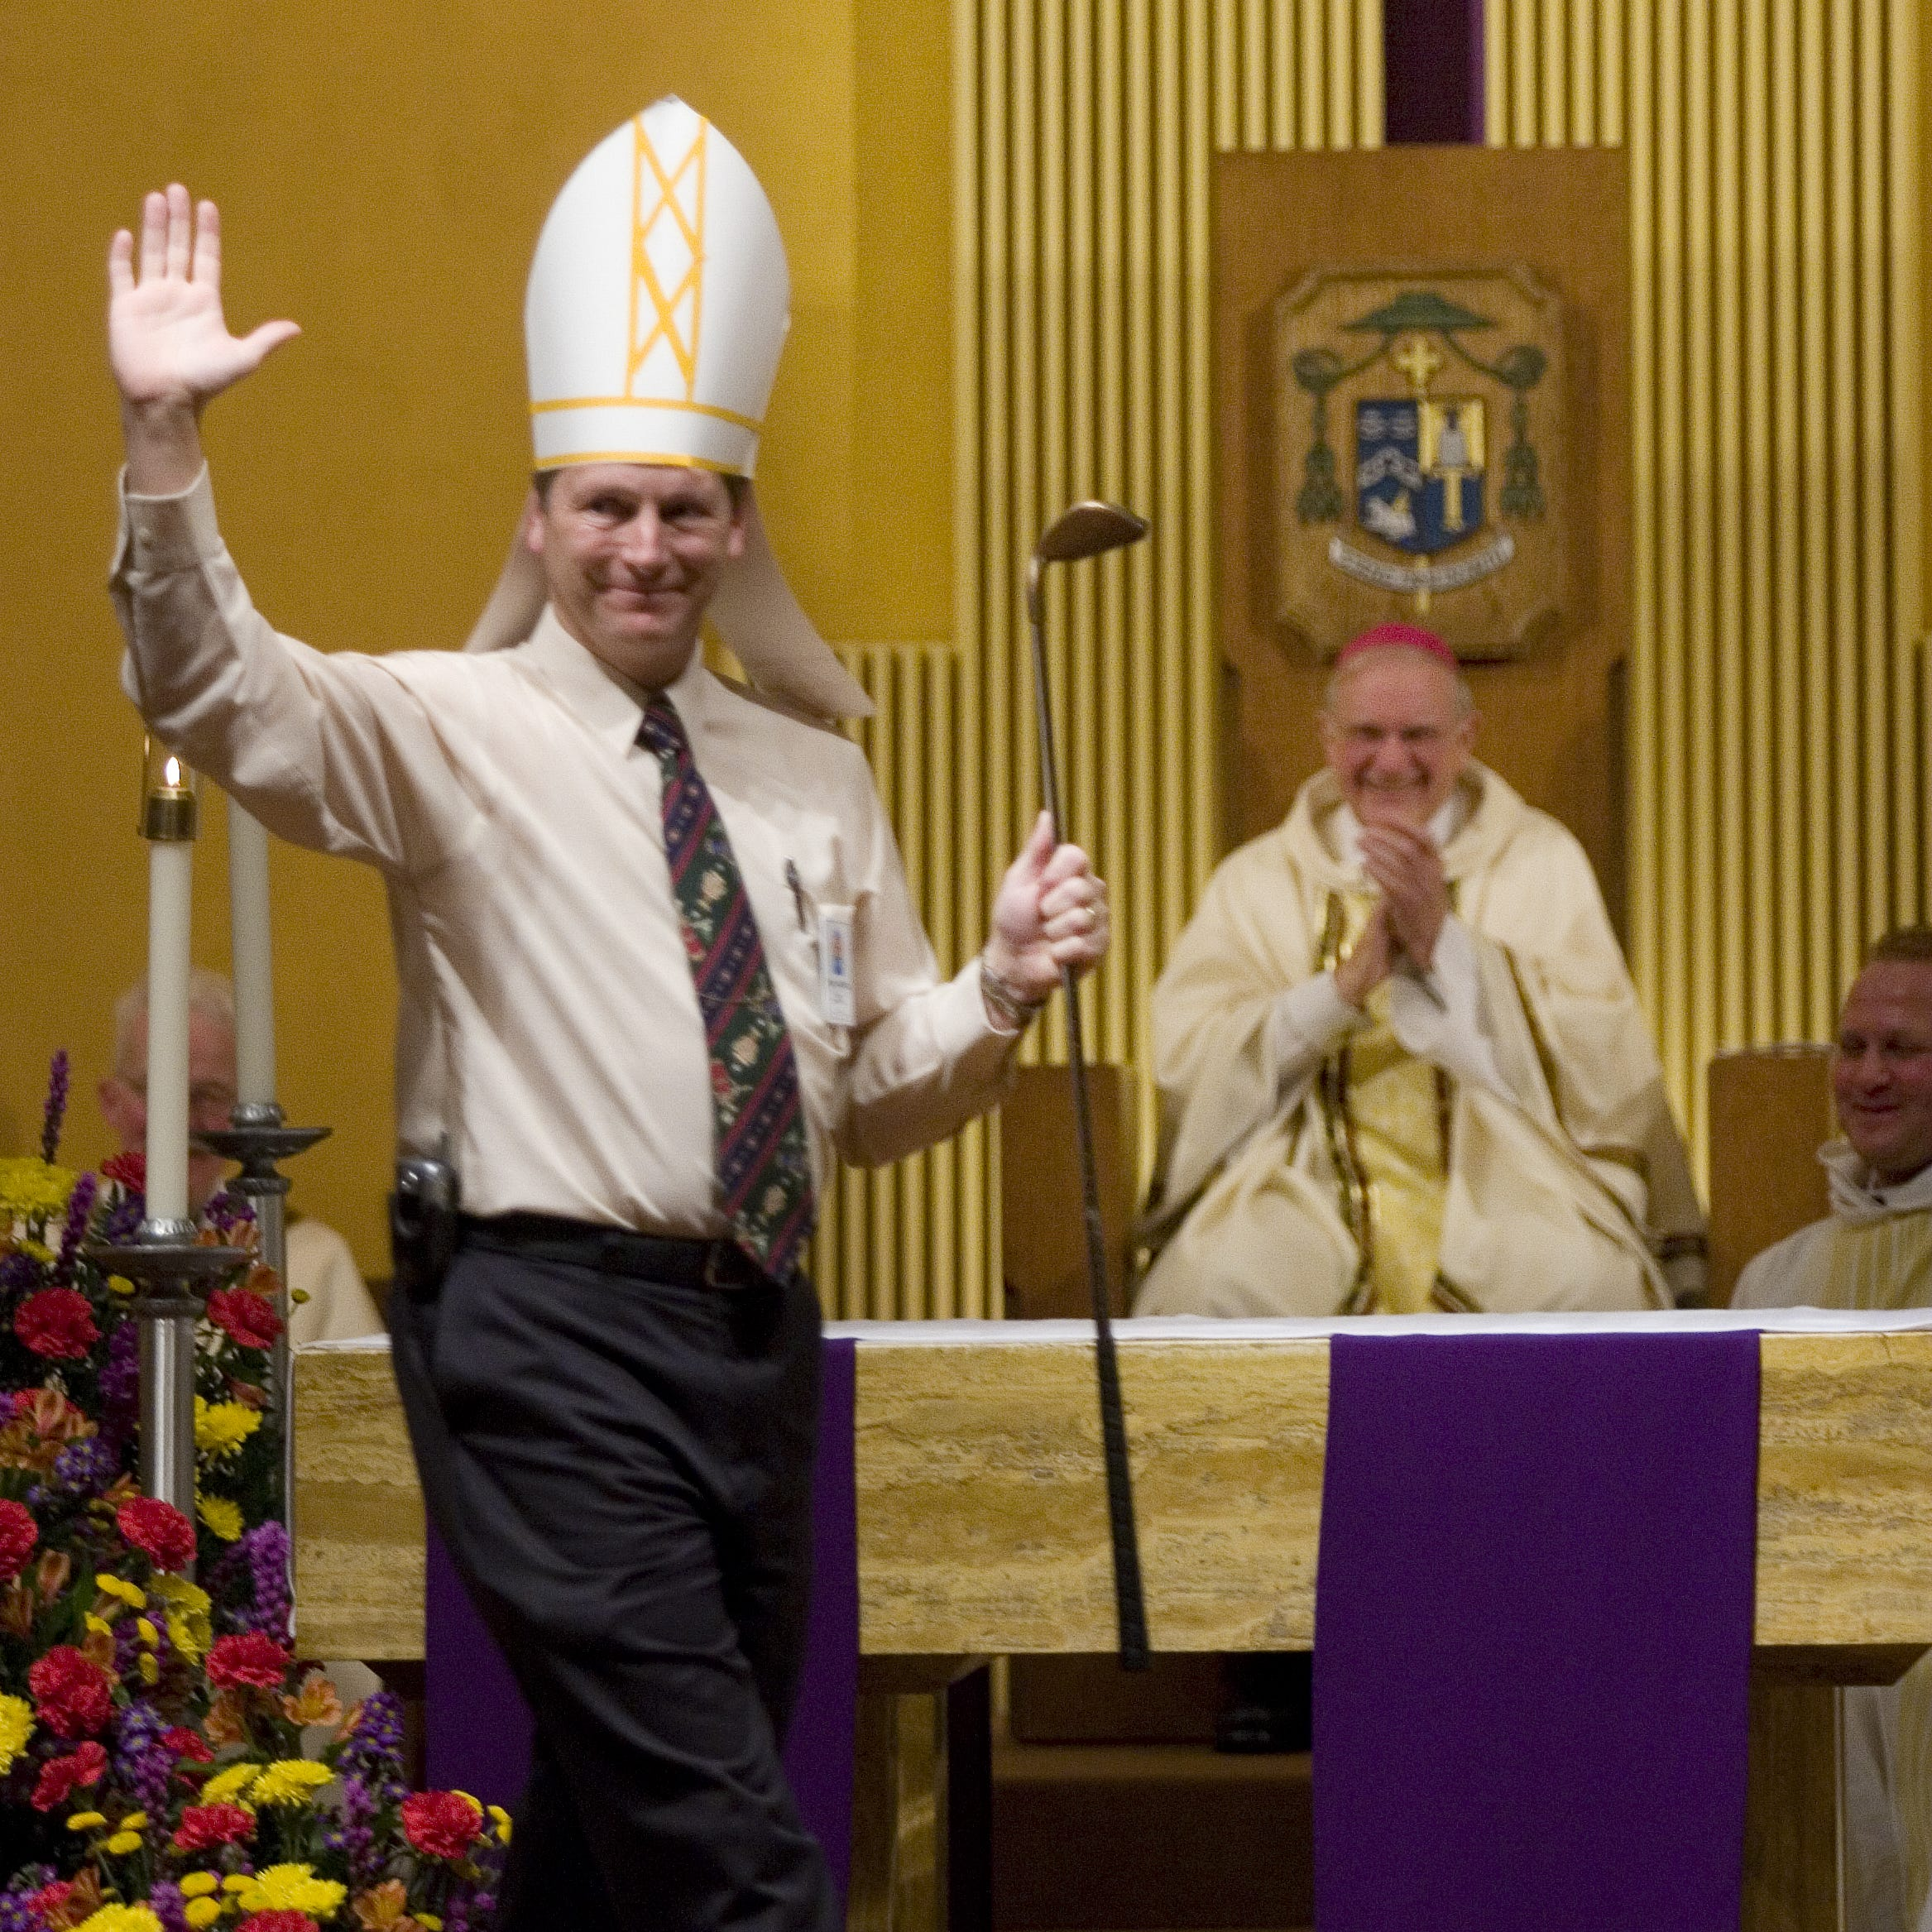 A 2008 photo of Troy Casteel, then-Director of Family Misistries for the Diocese, pointing out Bishop John Leibrecht's love of golf during a skit after Mass.